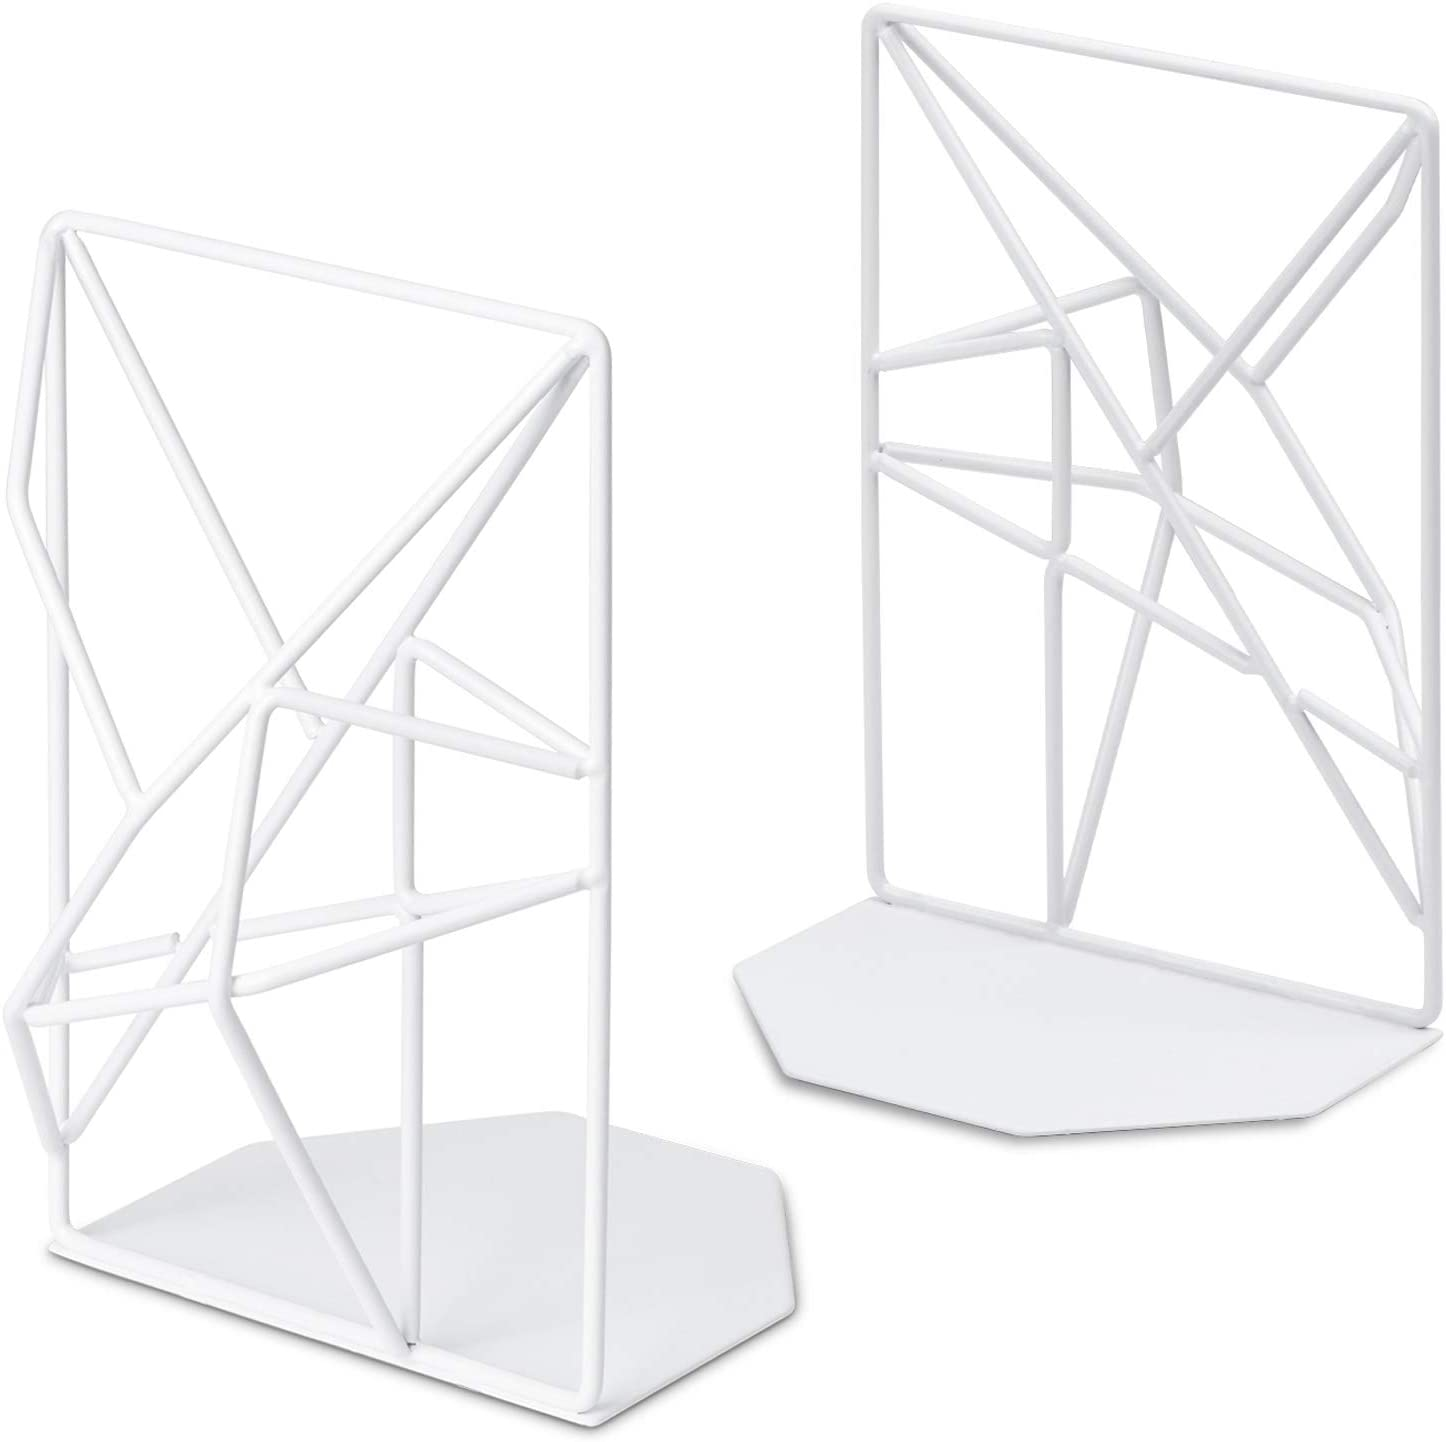 SRIWATANA Bookends White, Decorative Metal Book Ends Supports for Shelves, Unique Geometric Design(1 Pair/2 Pieces)